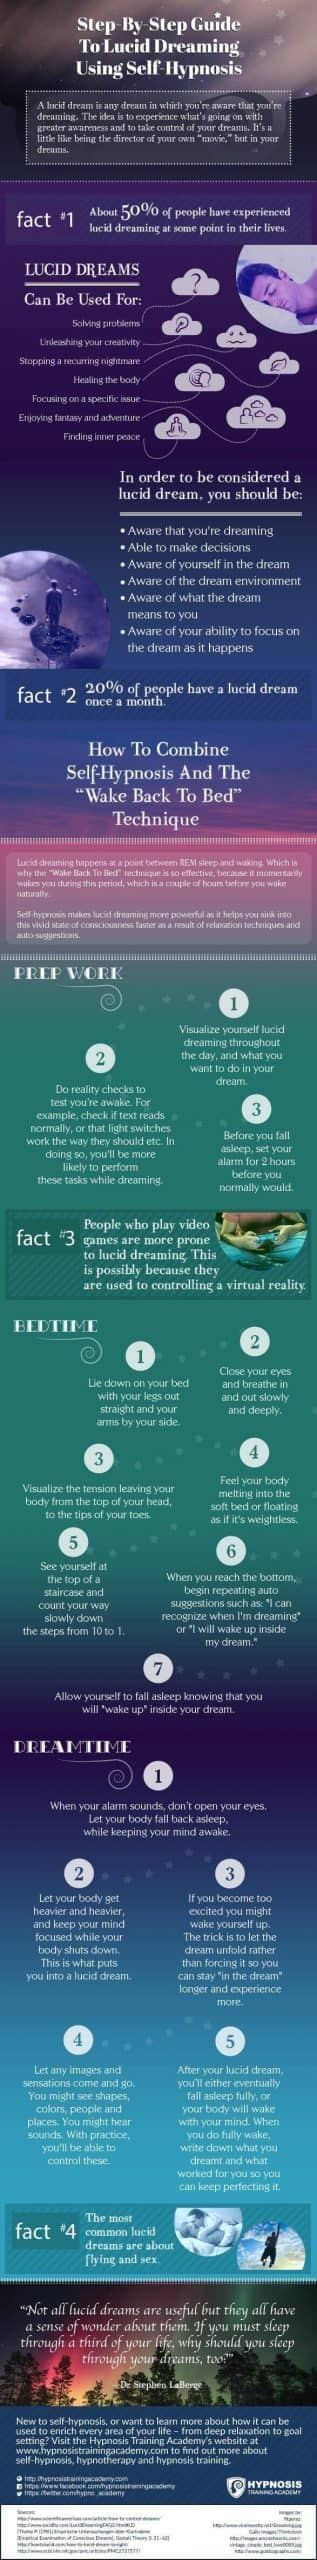 Step-by-Step Guide to Lucid Dreaming Using Self-Hypnosis